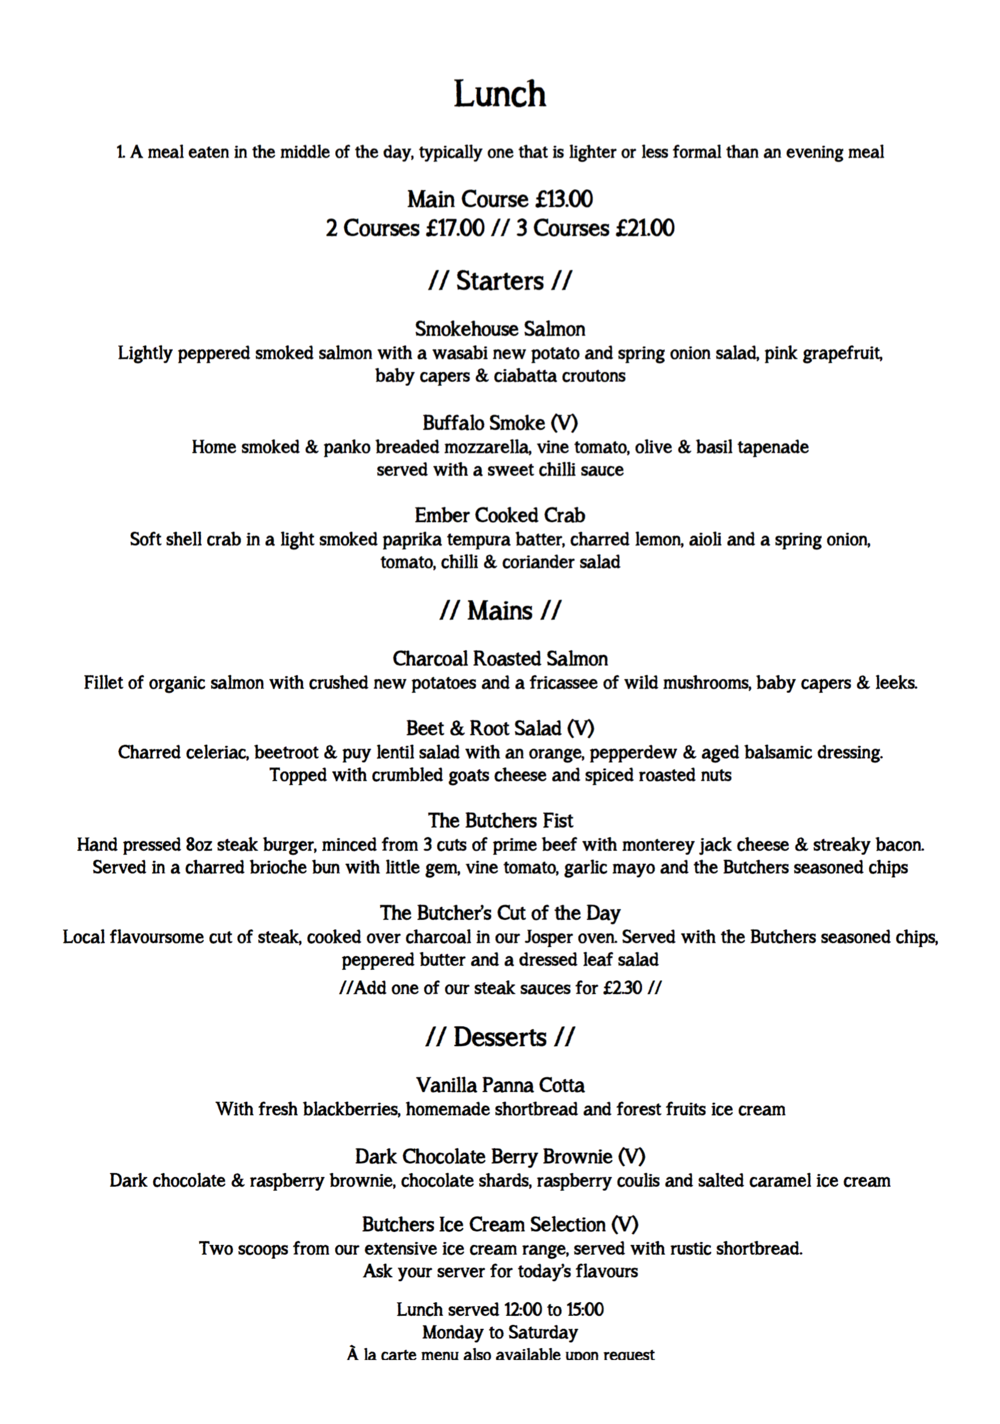 Click here to see a sample lunch menu